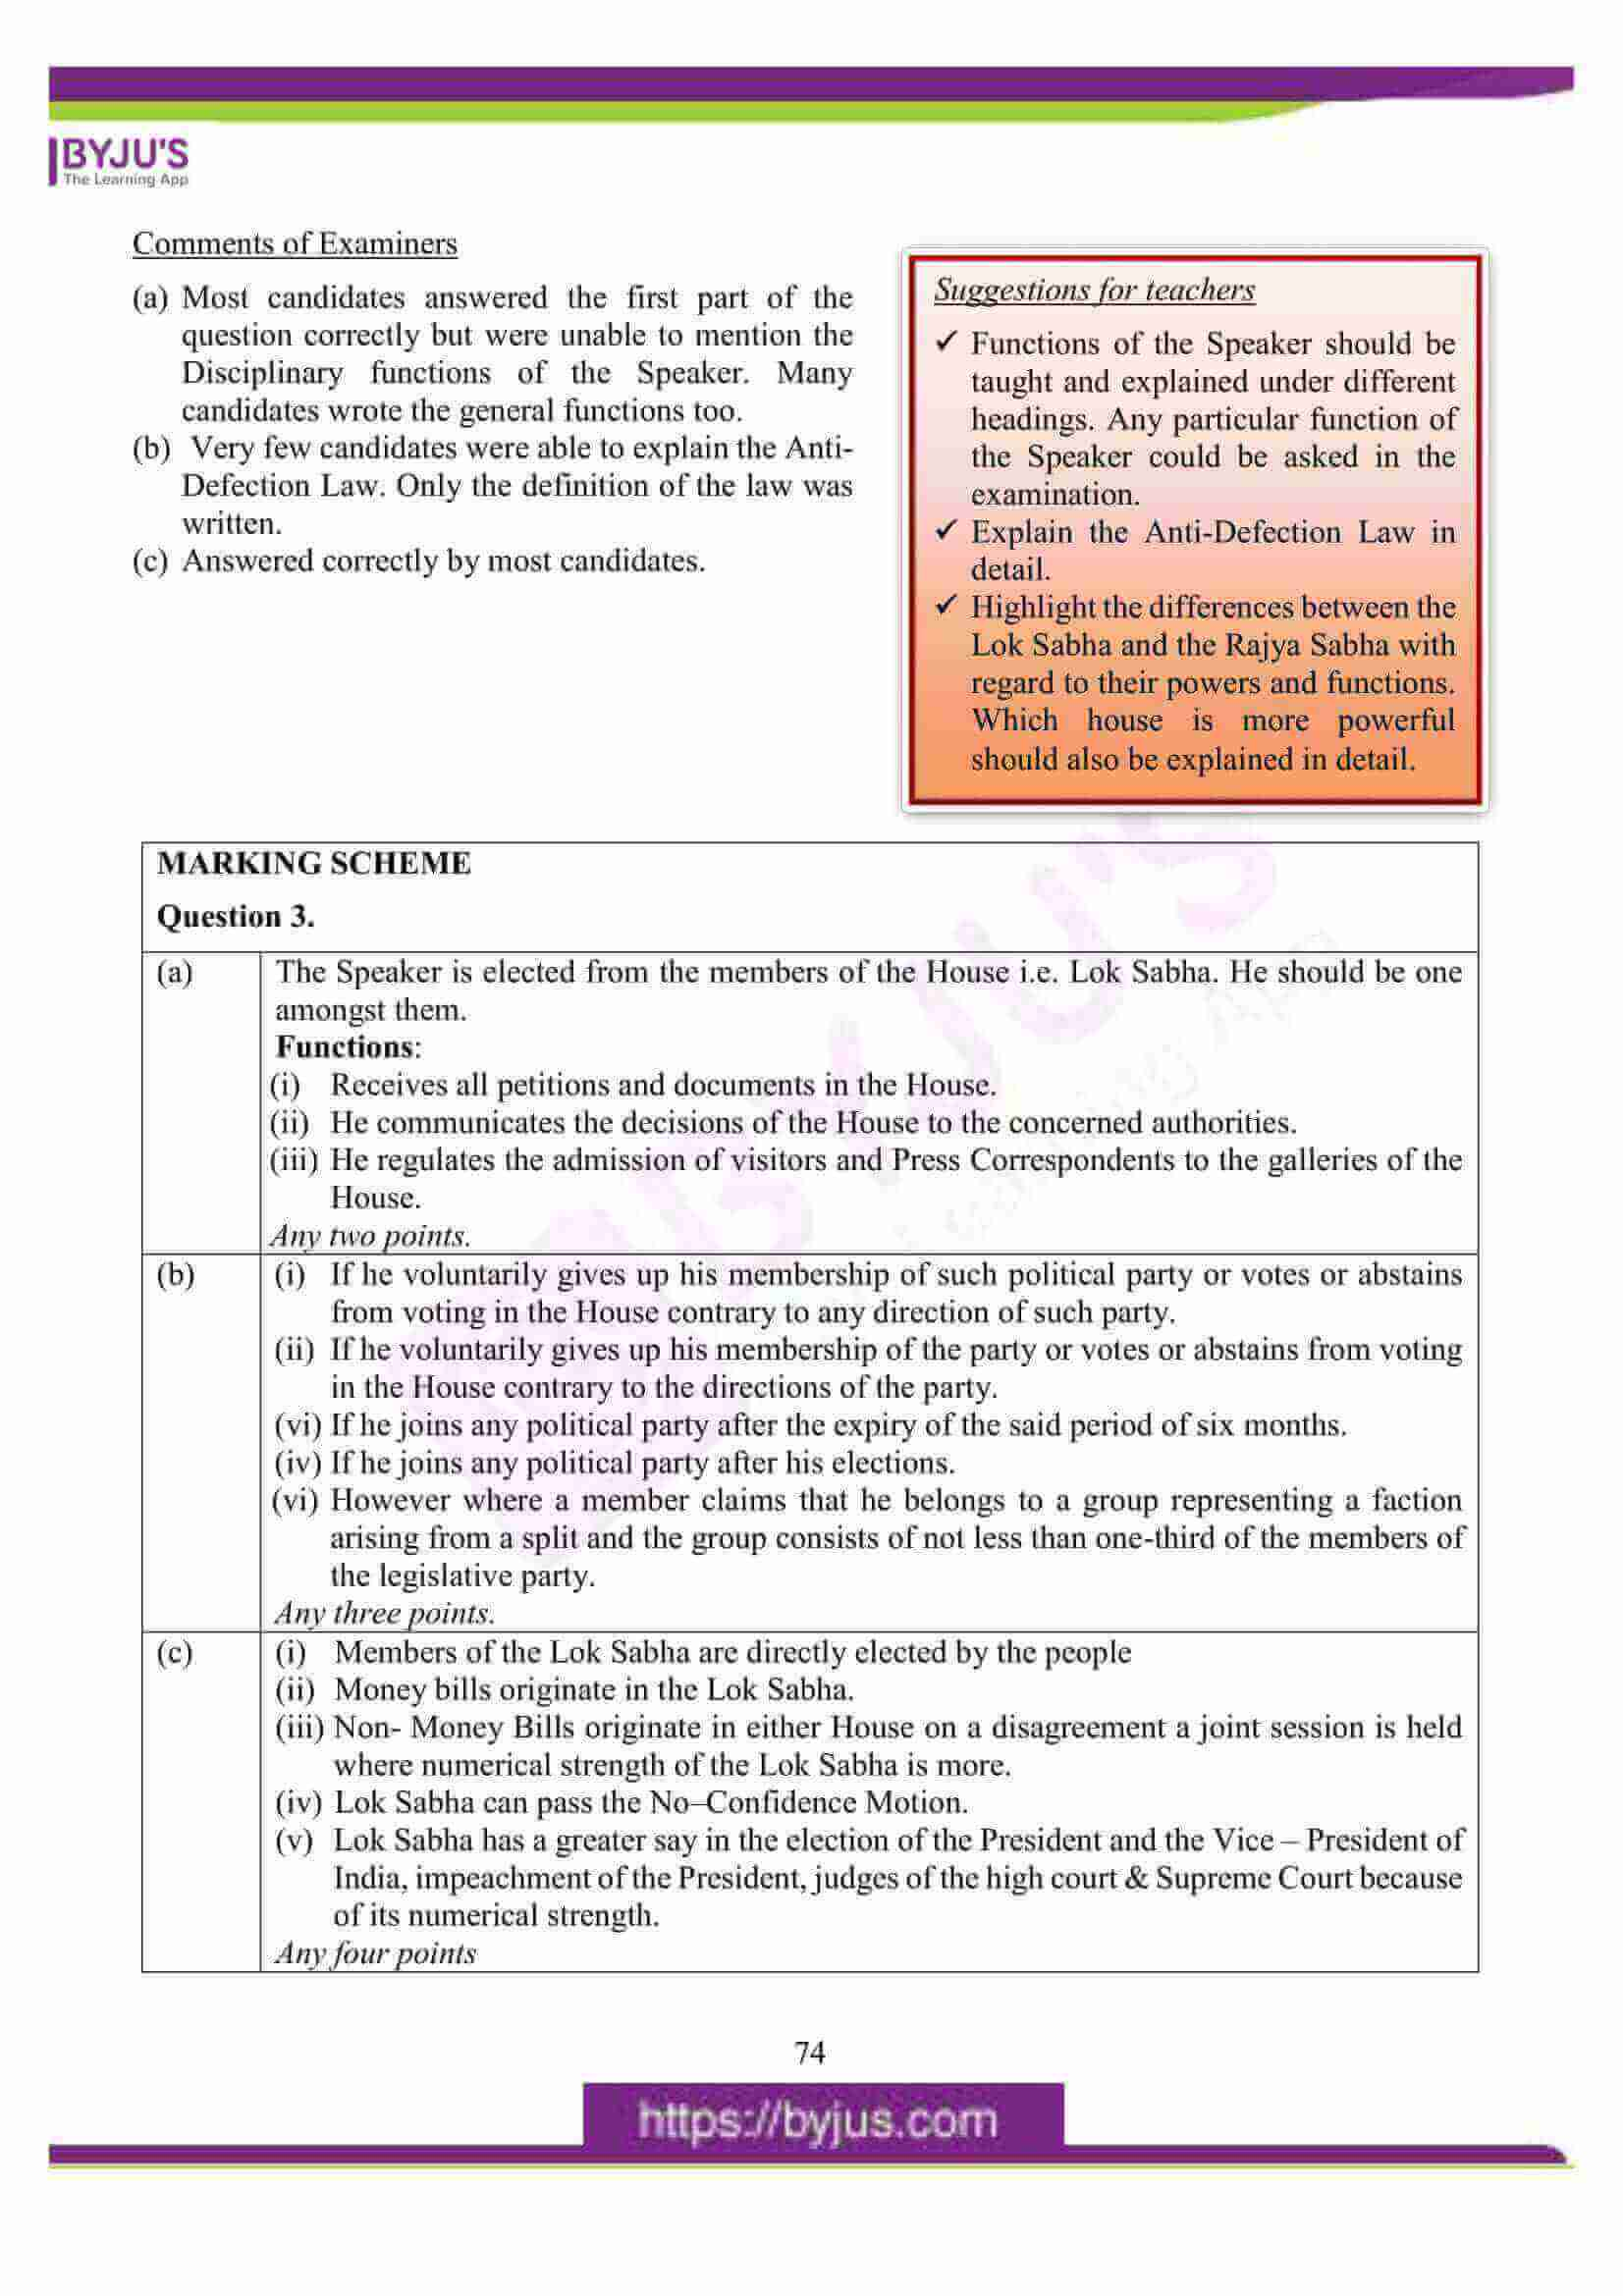 icse class 10 his and civics question paper solution 2016 07